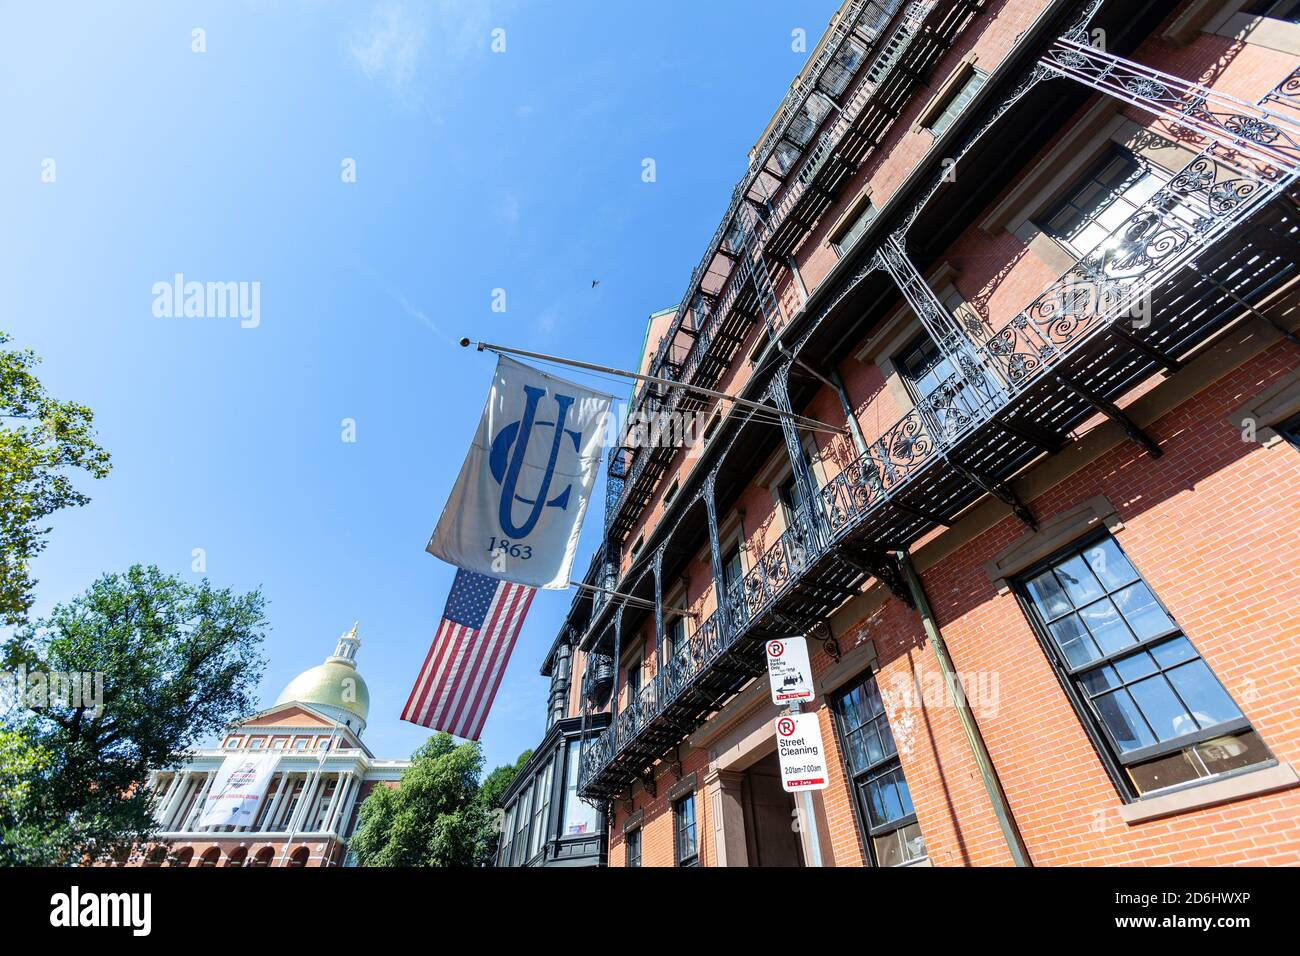 Union Club Boston High Resolution Stock Photography And Images Alamy